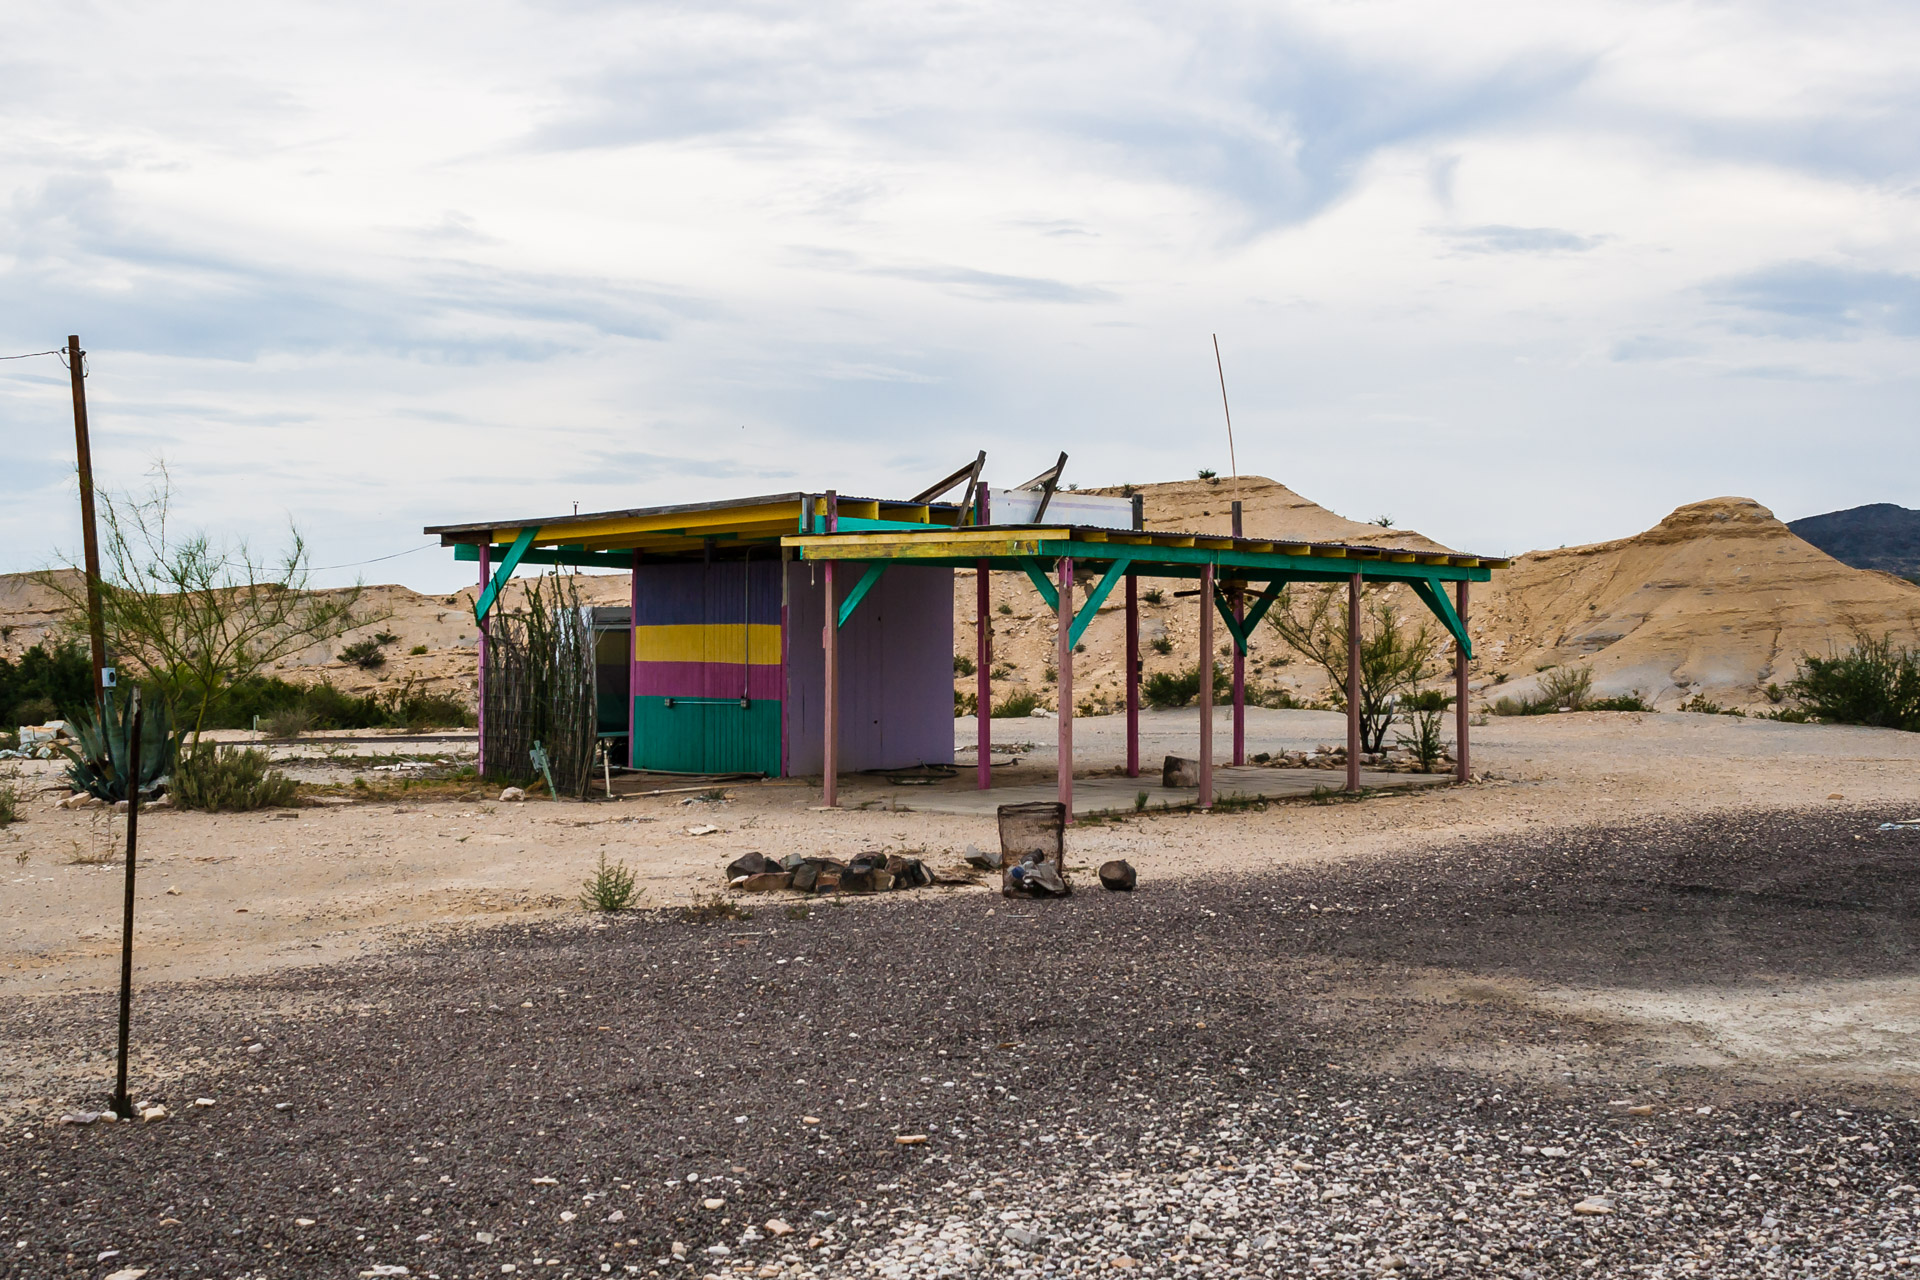 Colorful Desert Shack (left side far)